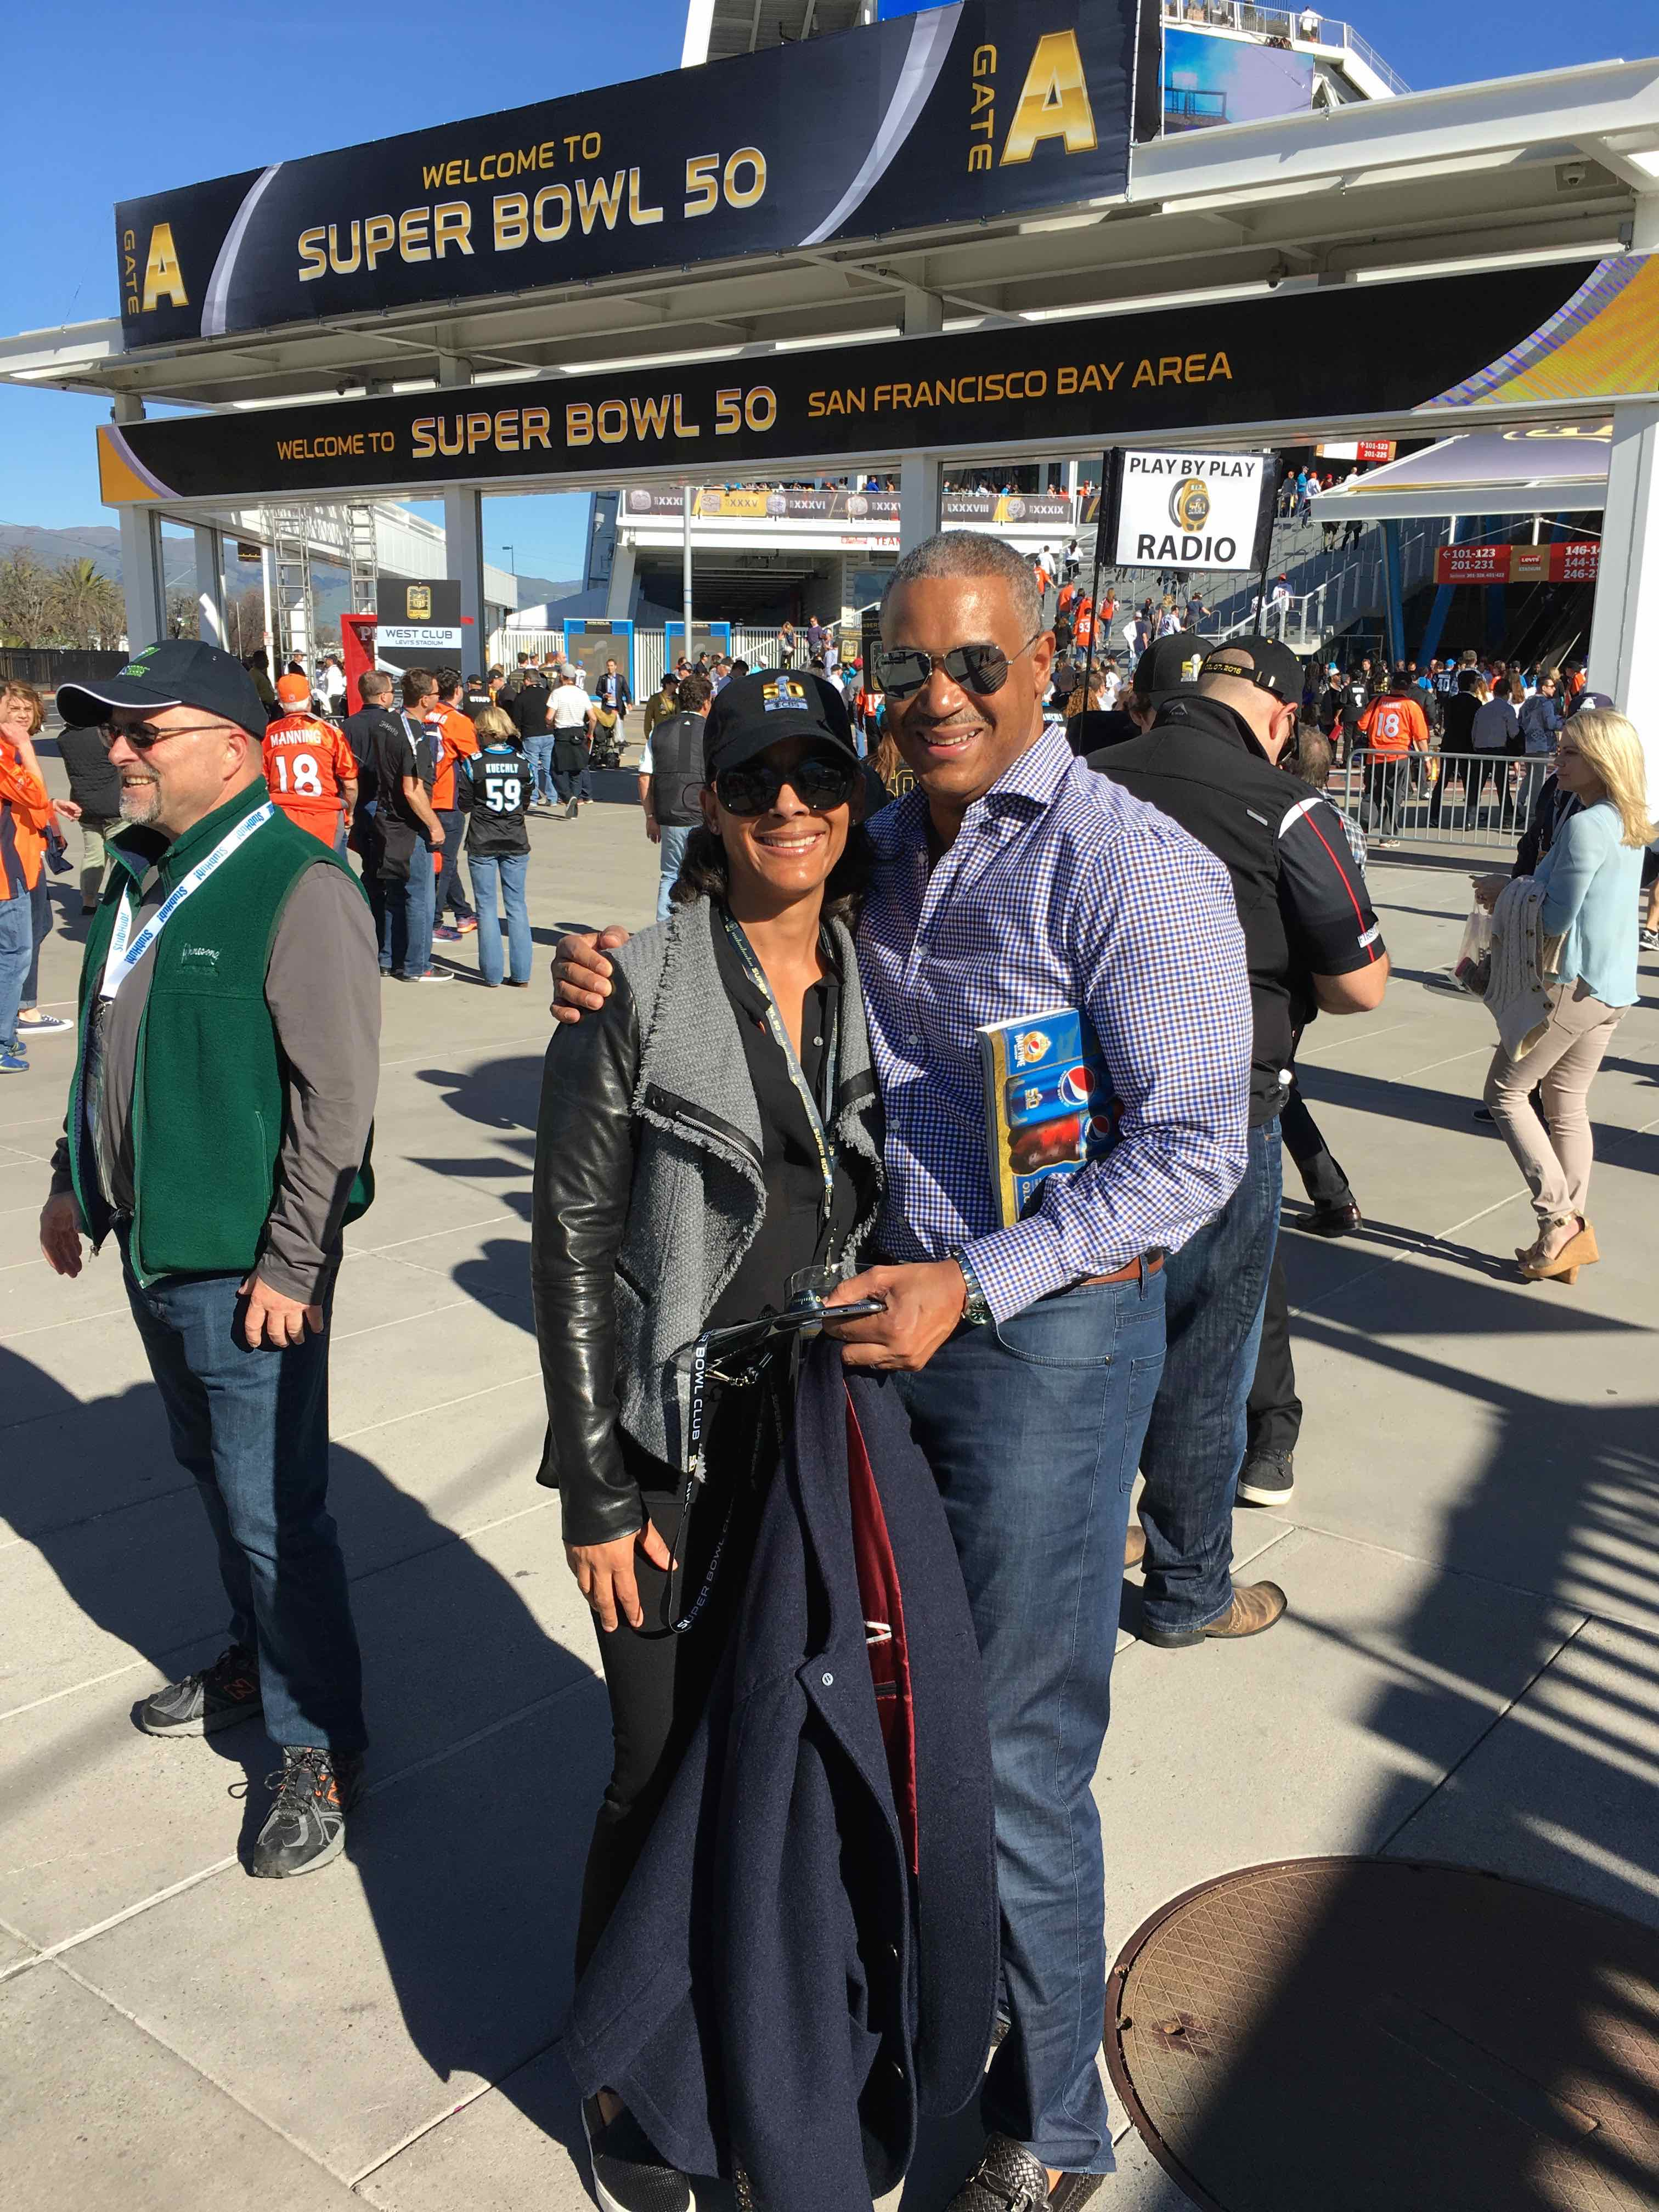 small_Renata + Ken Simril at Super Bowl 50.jpg